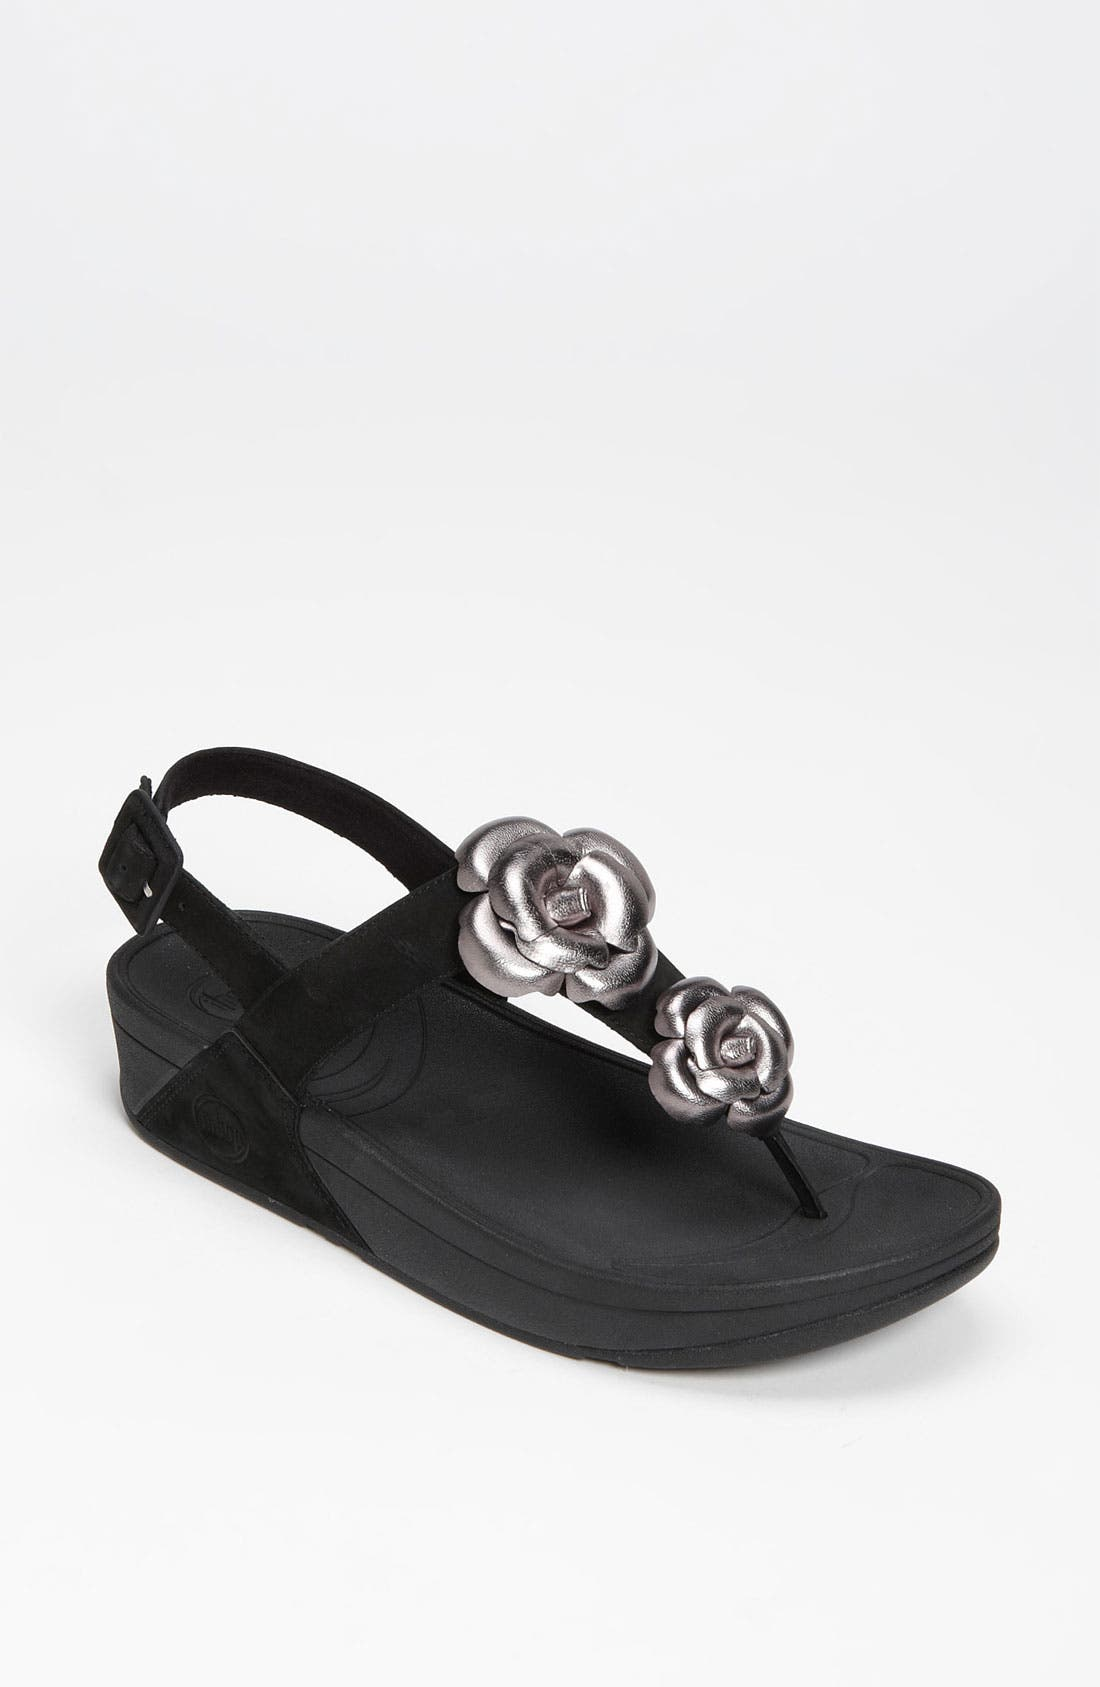 Alternate Image 1 Selected - FitFlop 'Floretta' Sandal